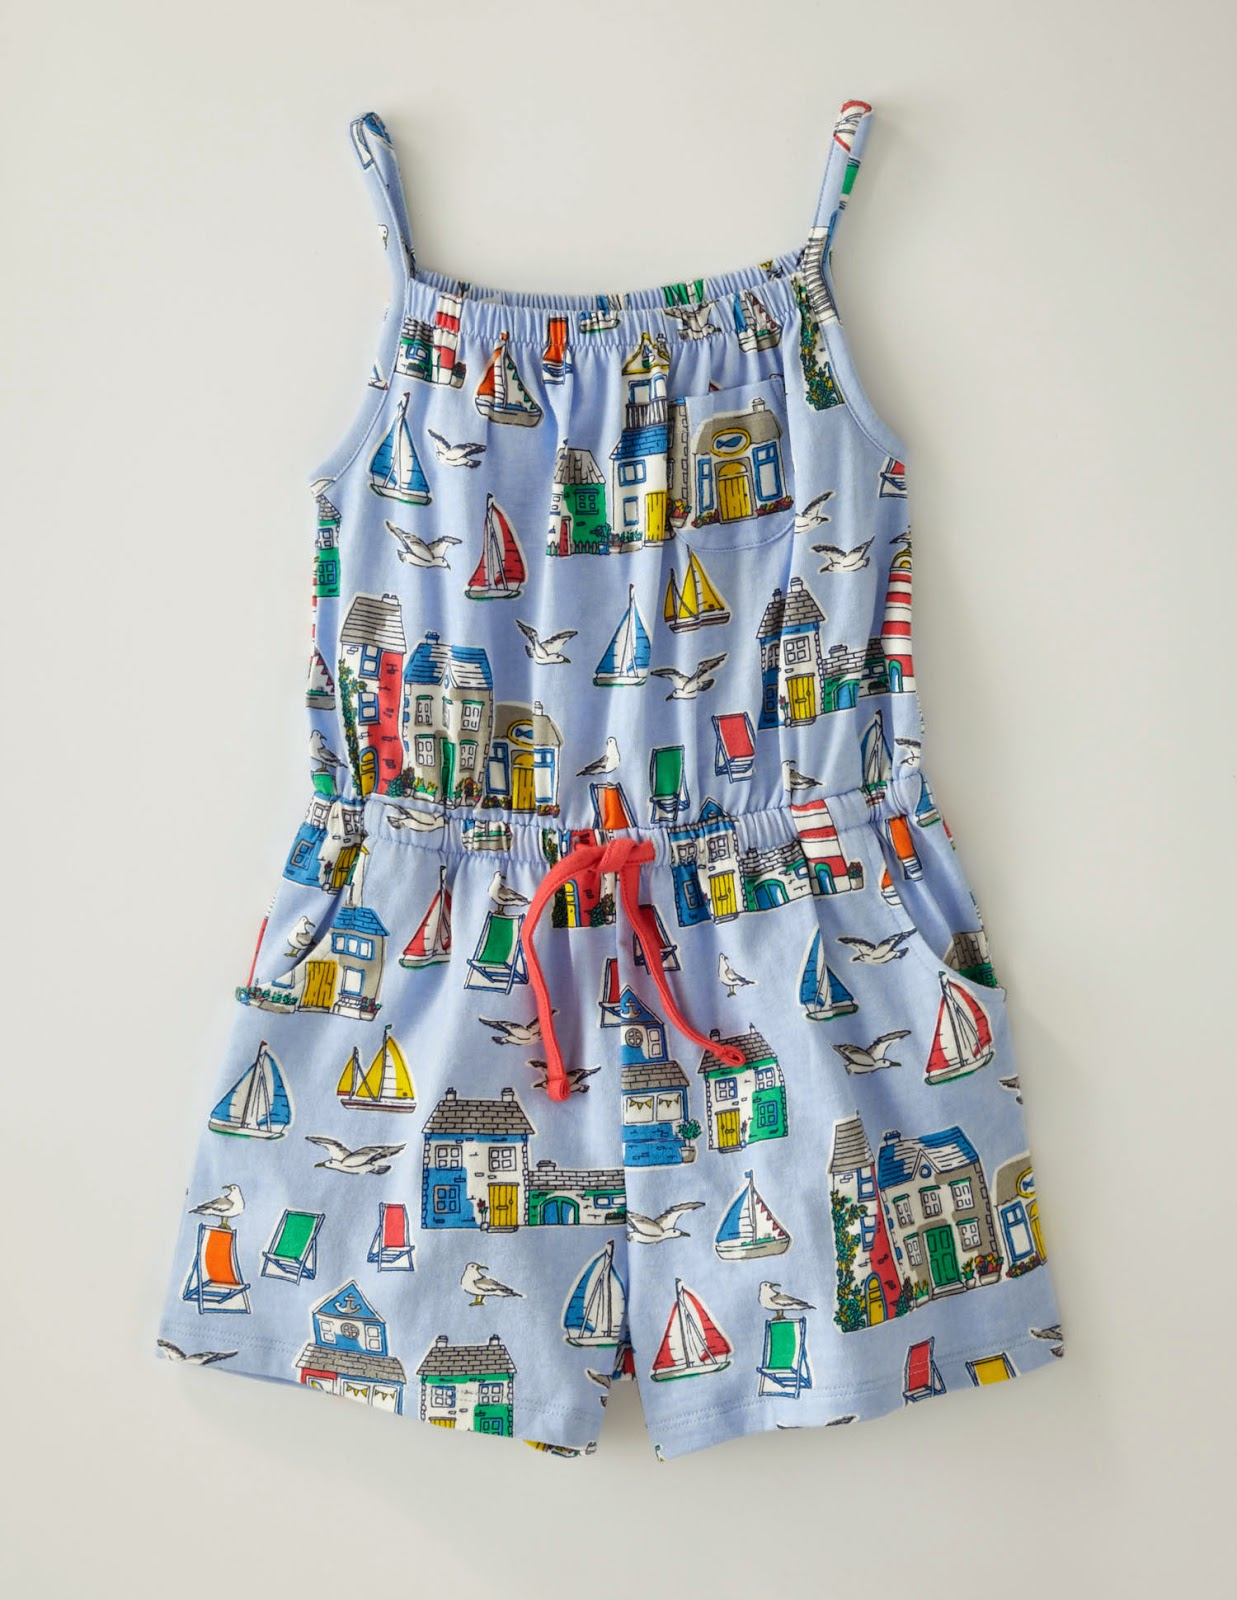 Boden Summer Play Clothes Festivals Camping Sailing Playsuit Culottes